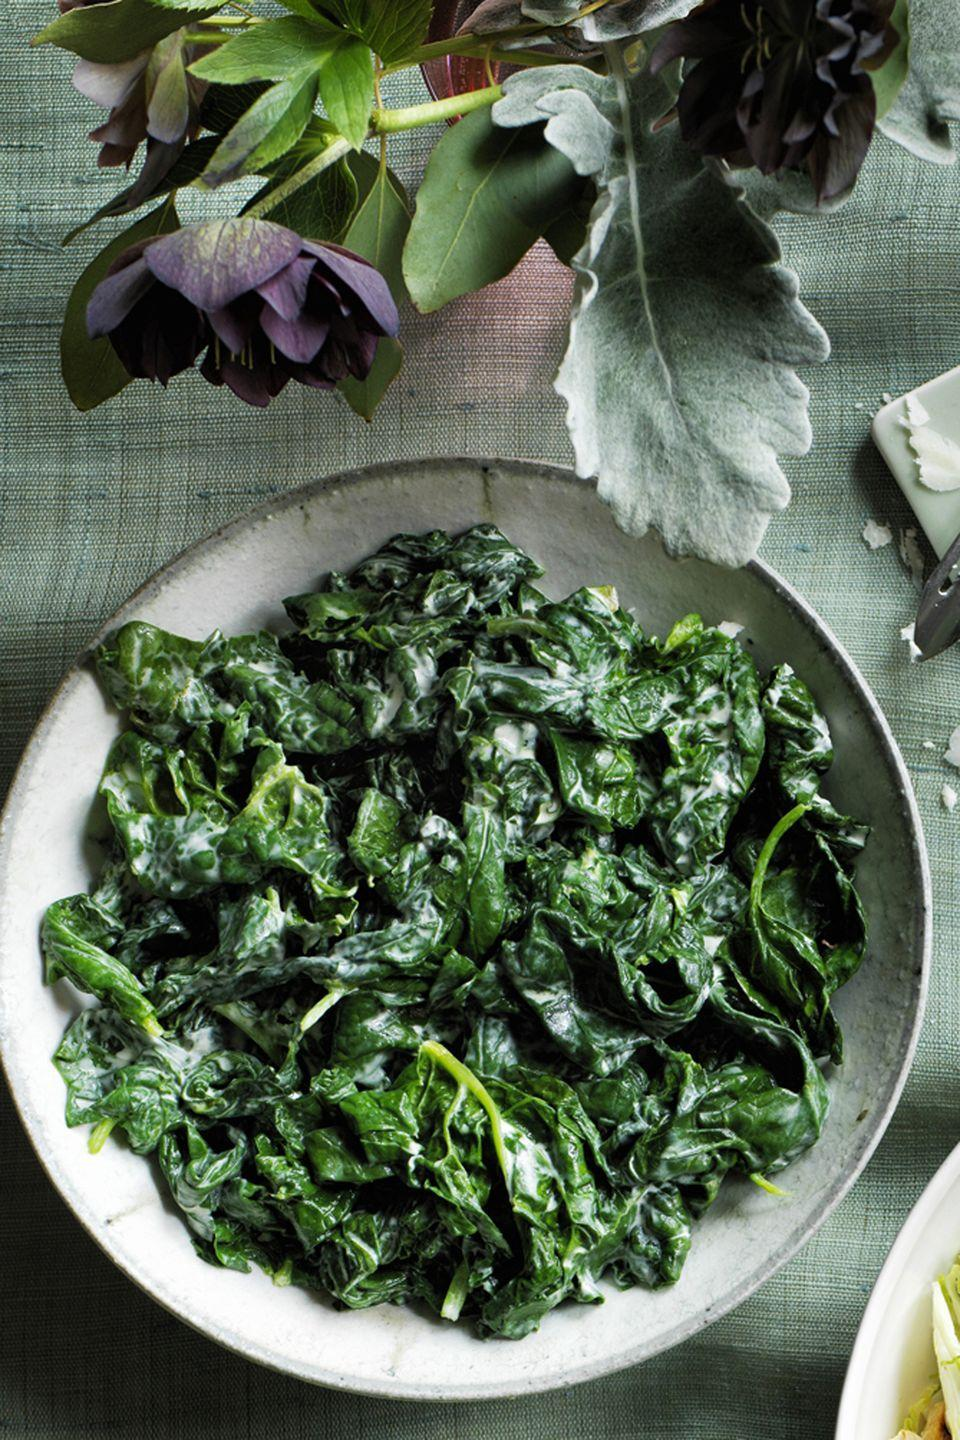 """<p>Because a little bit of cheese makes everything better, especially to plain spinach.</p><p><em><strong><a href=""""https://www.womansday.com/food-recipes/food-drinks/recipes/a60487/creamy-garlic-and-herb-spinach-recipe/"""" rel=""""nofollow noopener"""" target=""""_blank"""" data-ylk=""""slk:Get the Creamy Garlic and Herb Spinach recipe."""" class=""""link rapid-noclick-resp"""">Get the Creamy Garlic and Herb Spinach recipe.</a></strong></em></p>"""